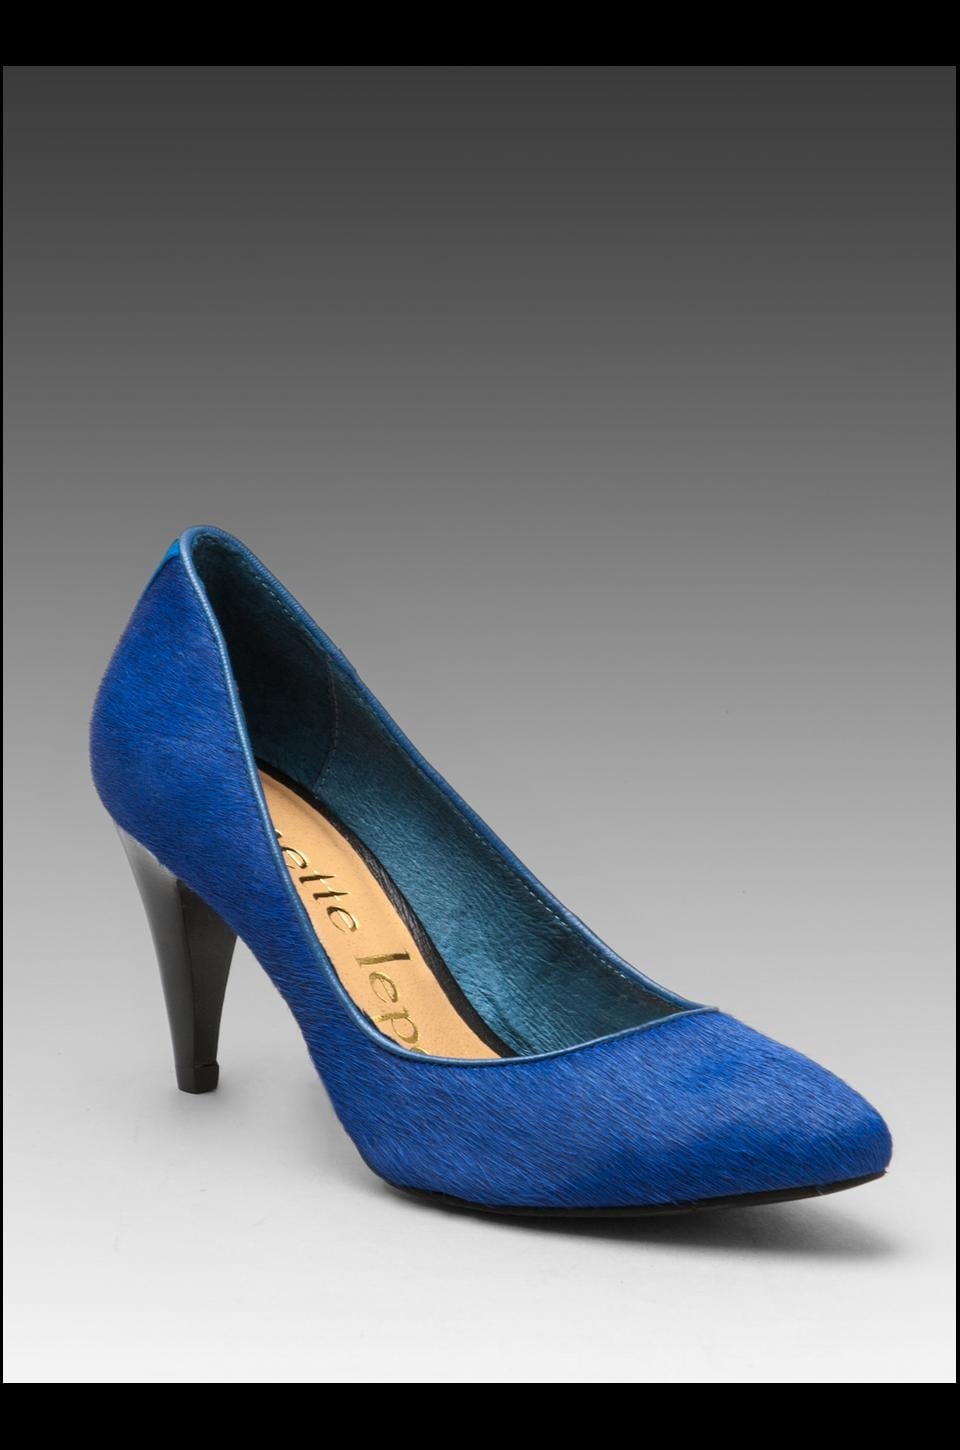 Nanette Lepore Play Me Pump in Dark Blue Calf Hair